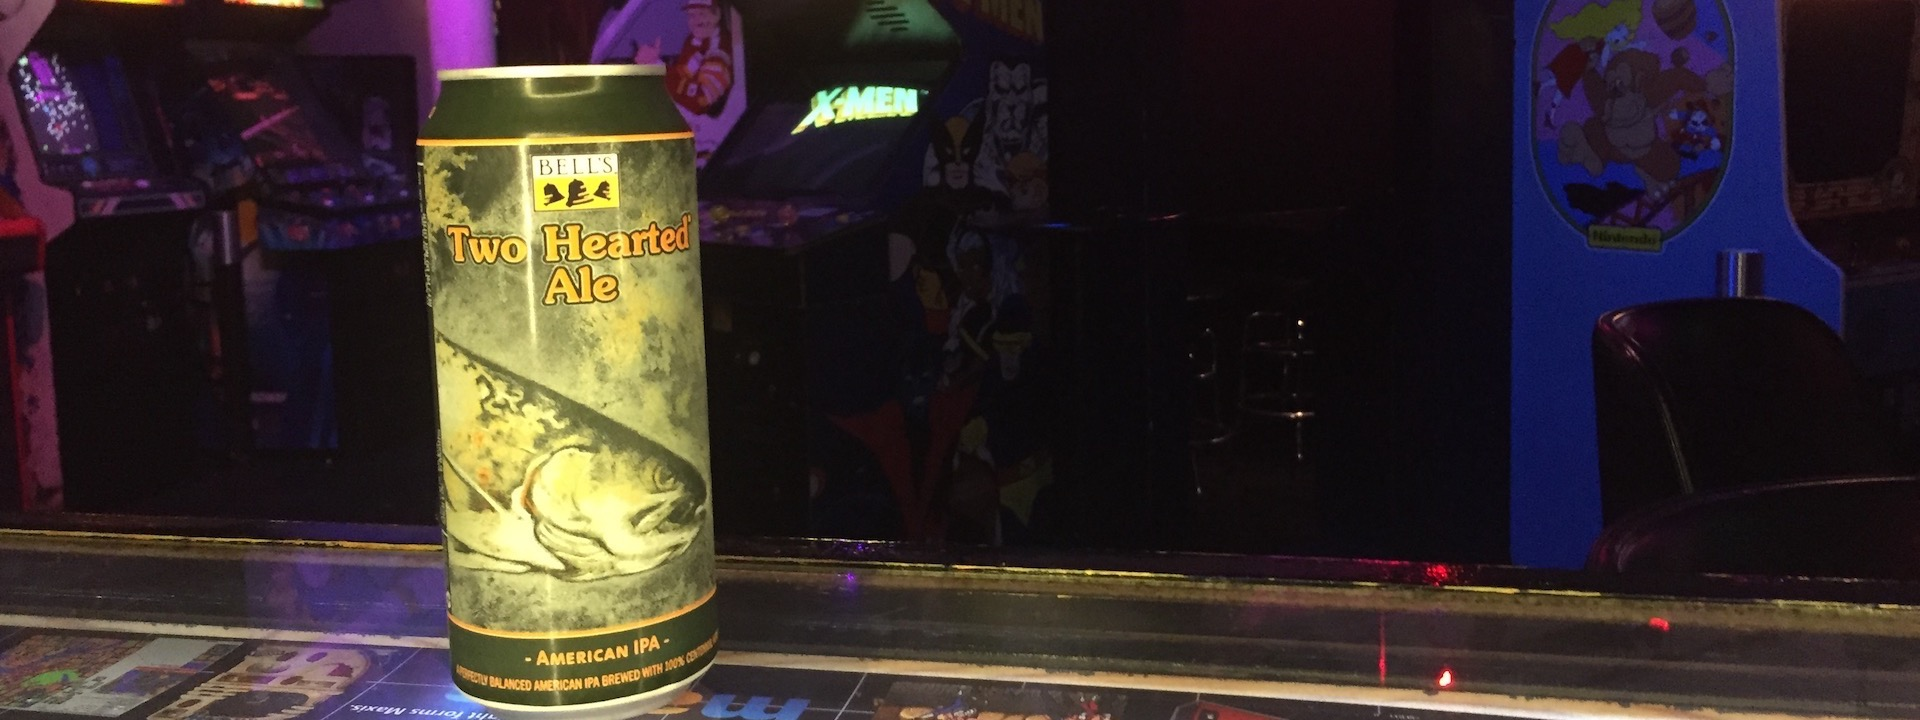 Hero two hearted ale